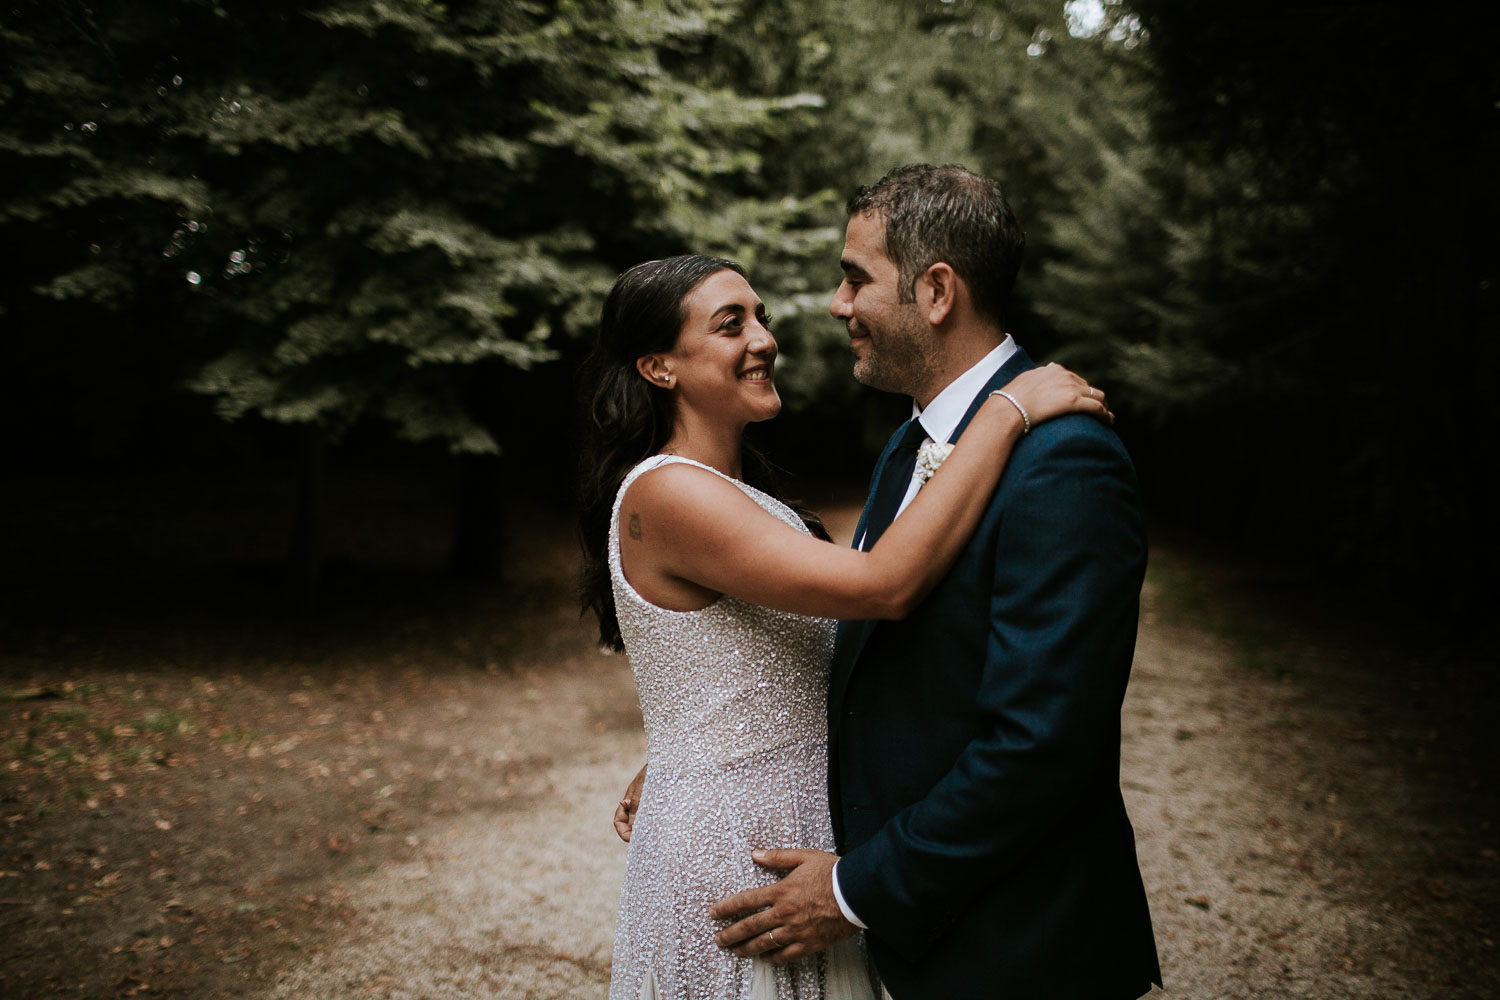 Mariage Château Bouffémont intimate wedding